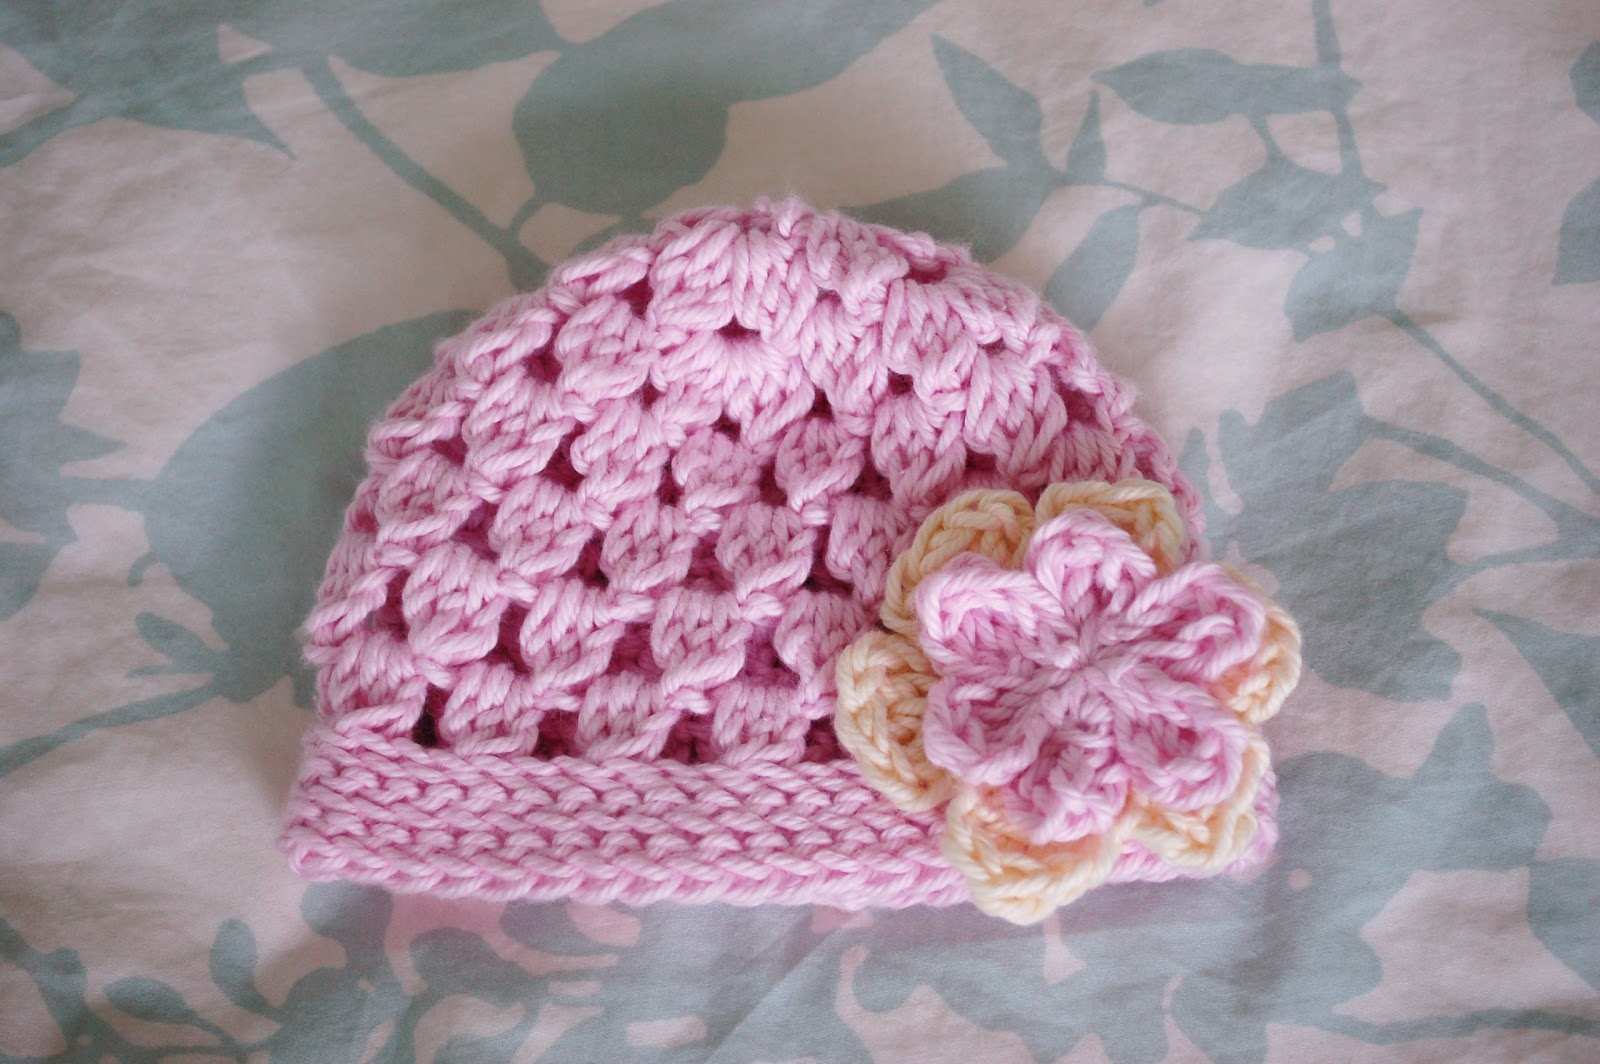 Free Crochet Patterns For Baby And Toddler Hats : Alli Crafts: Free Pattern: Cluster Hat - Newborn